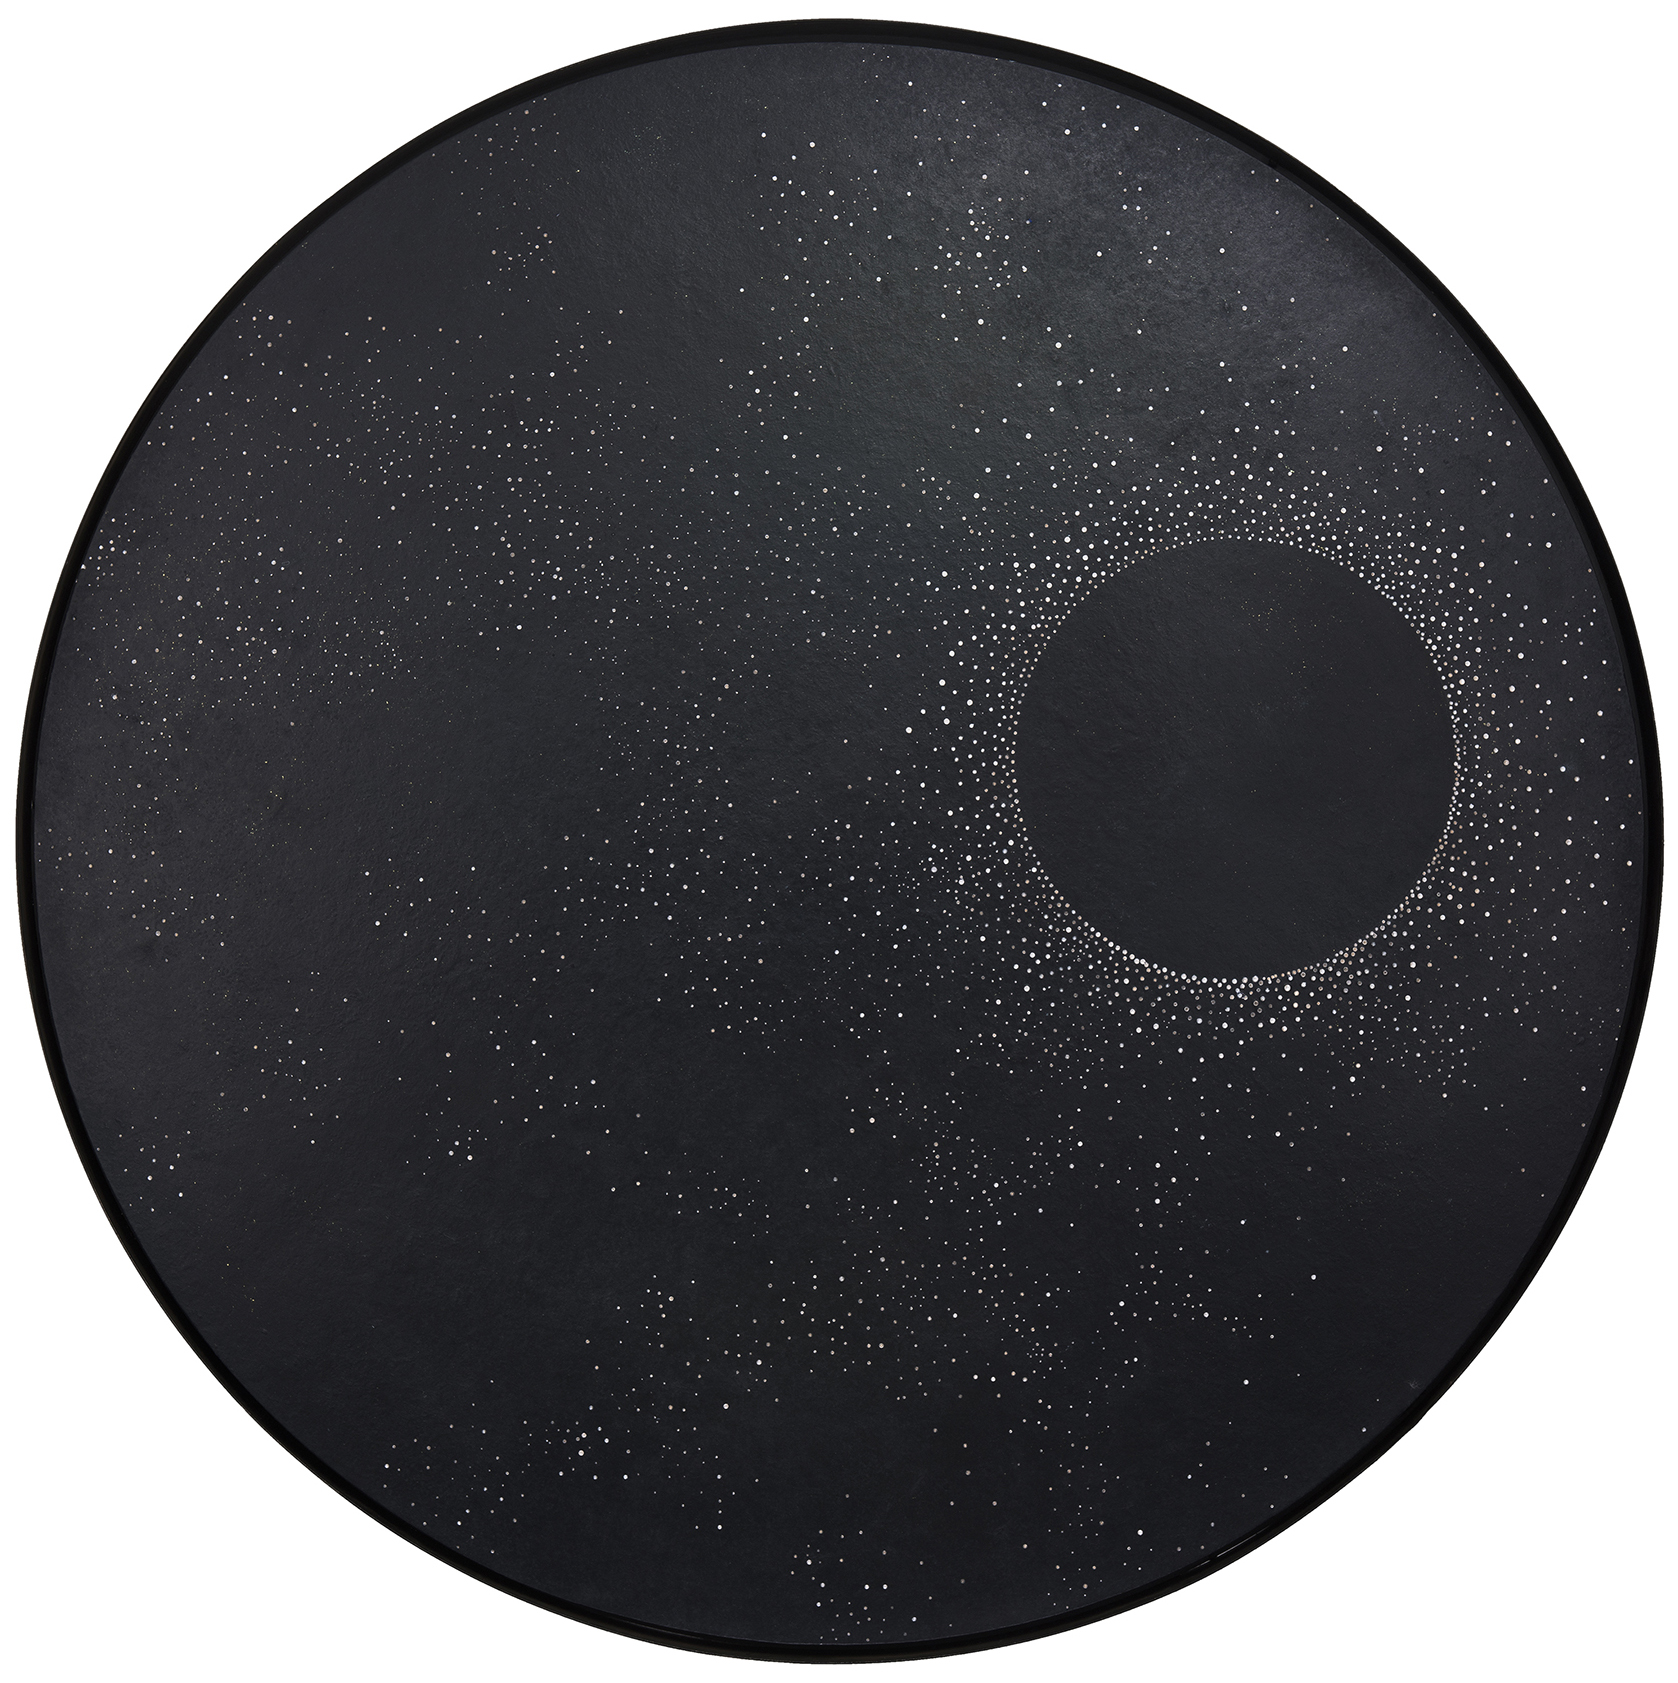 The constellation - Lacquer with holes engraved - Size : 100 cm dia